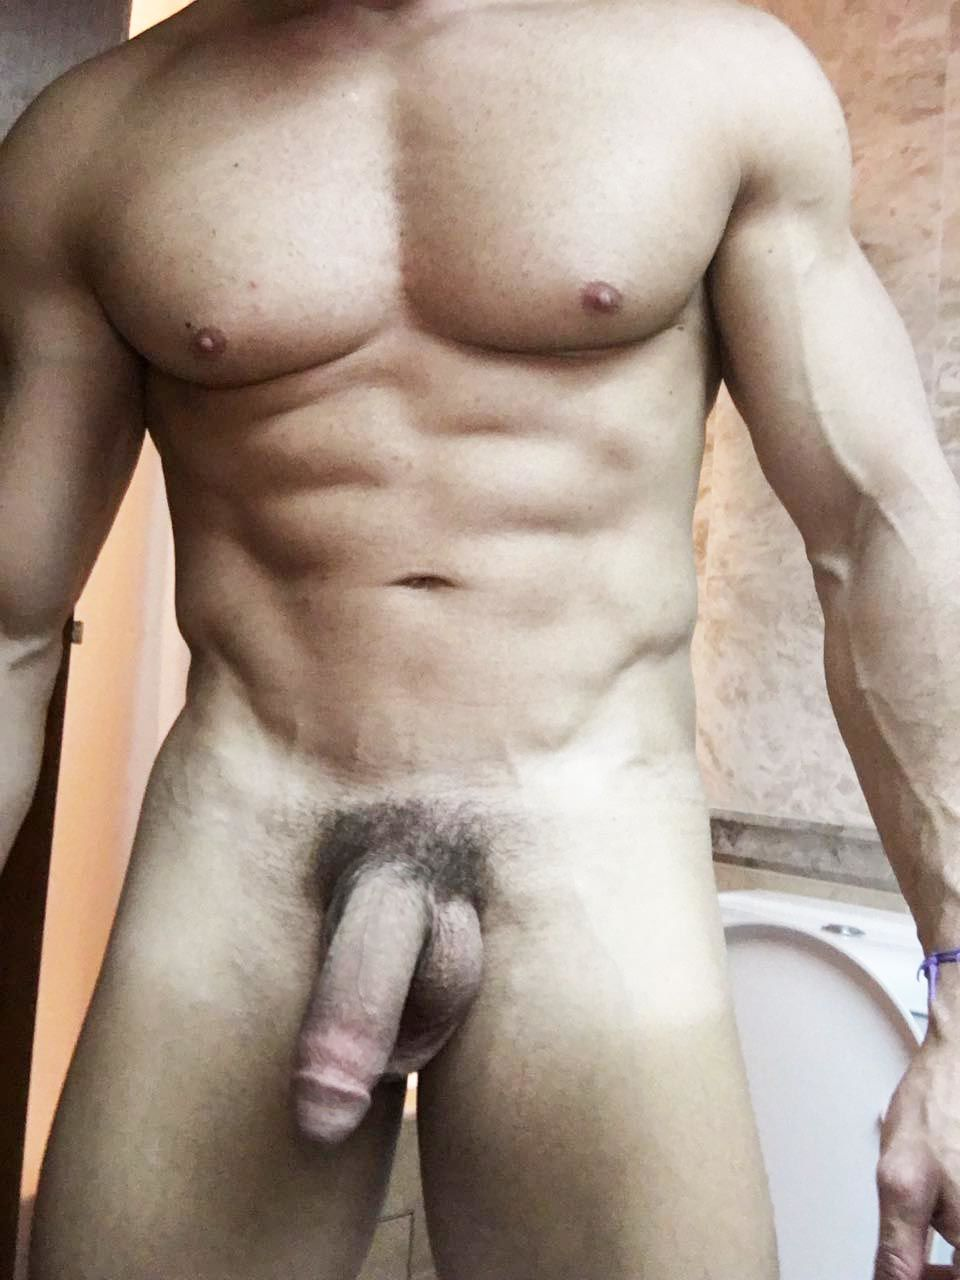 male escort dubai